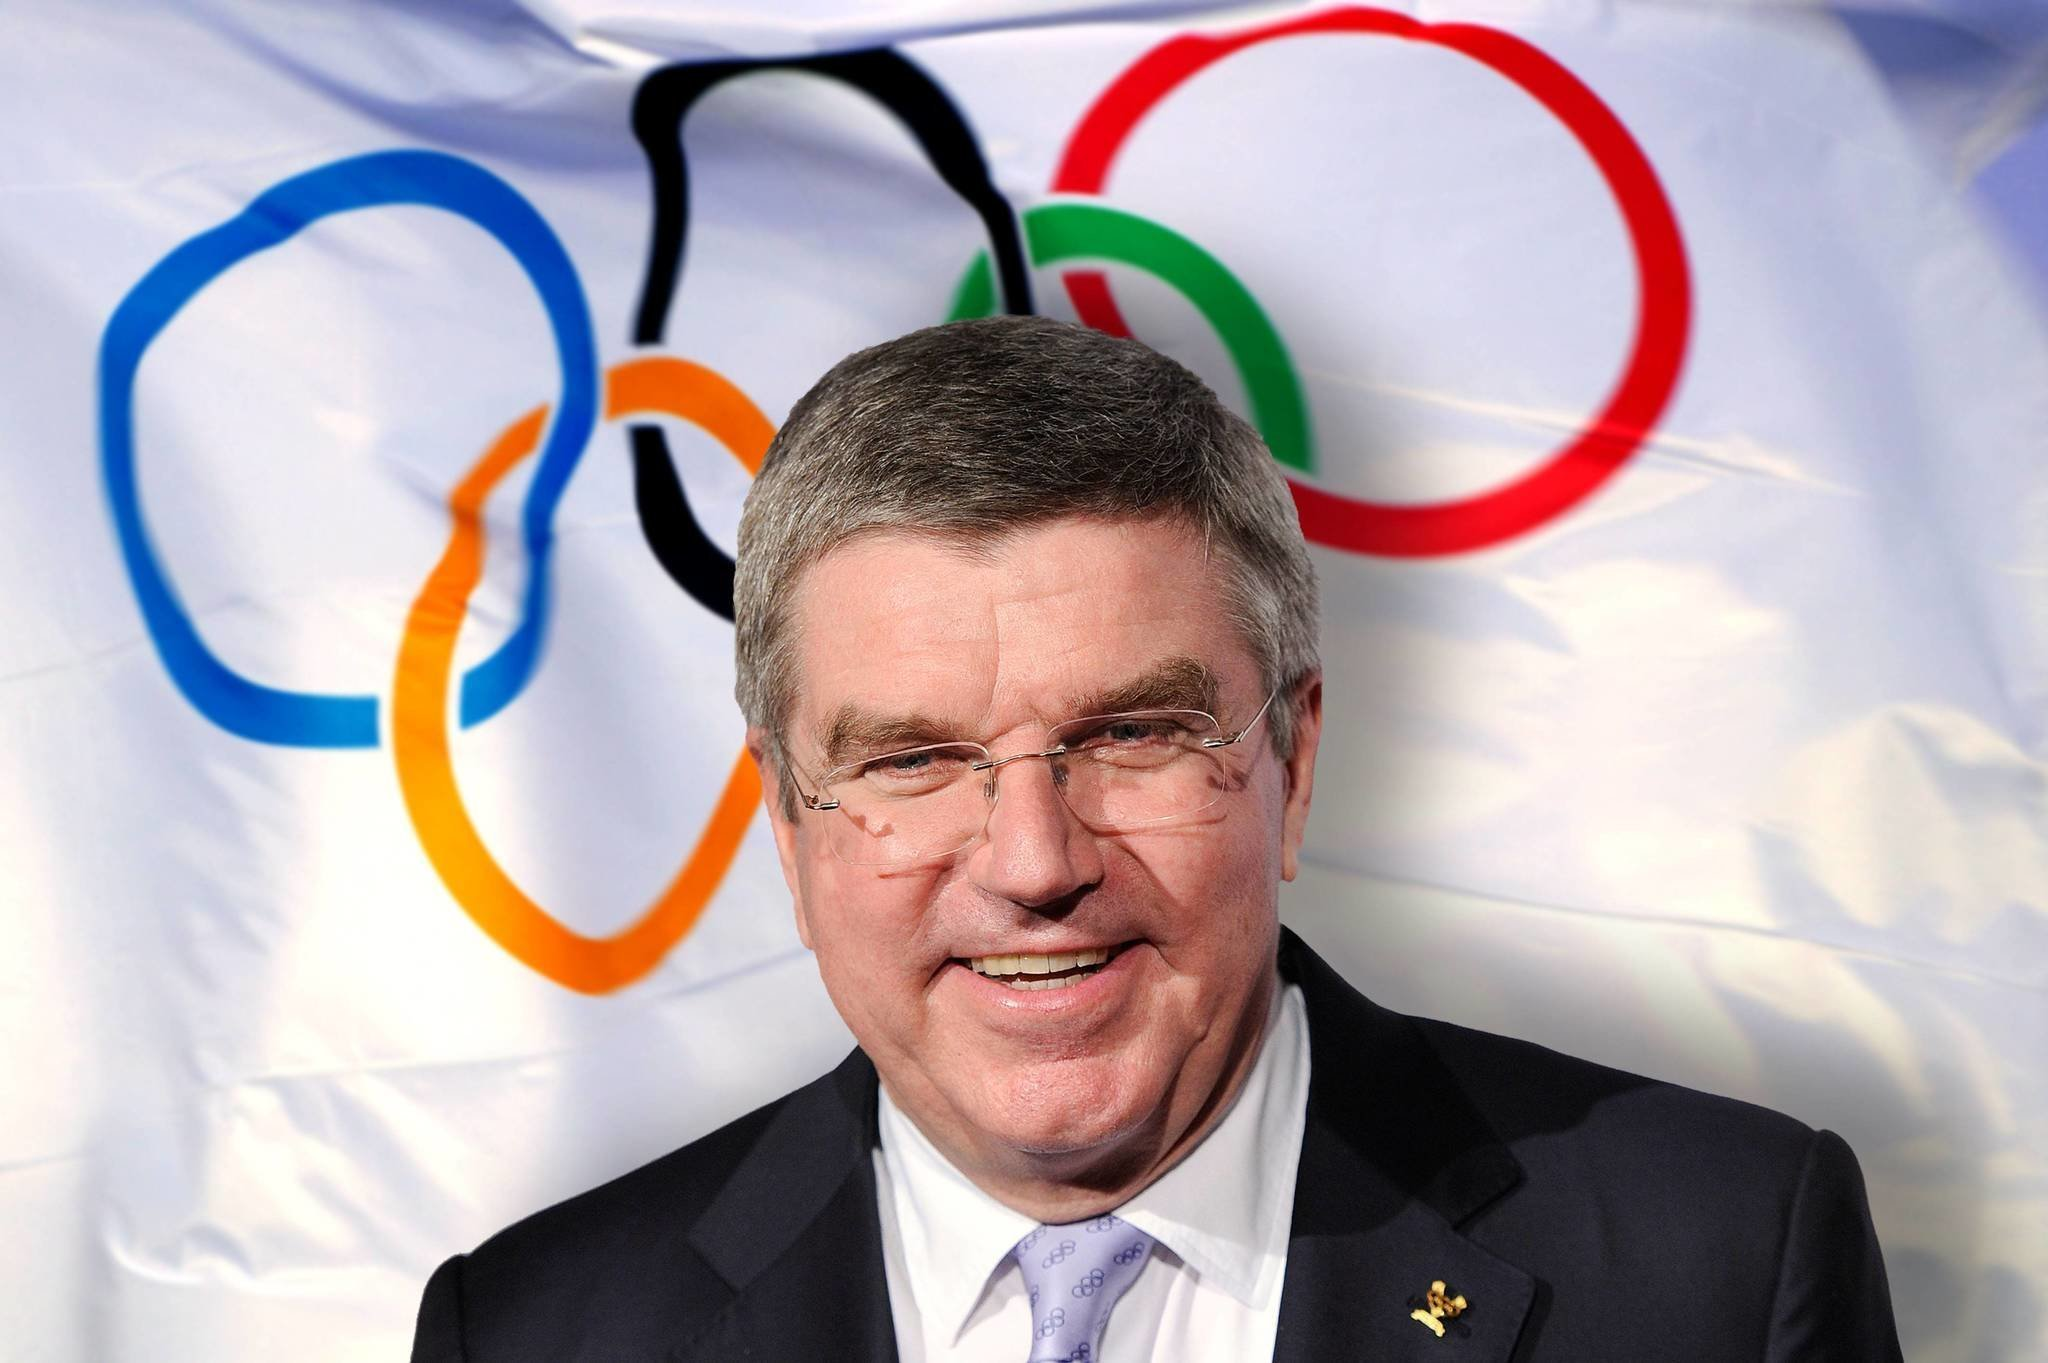 IOC President: Budapest can be a strong candidate